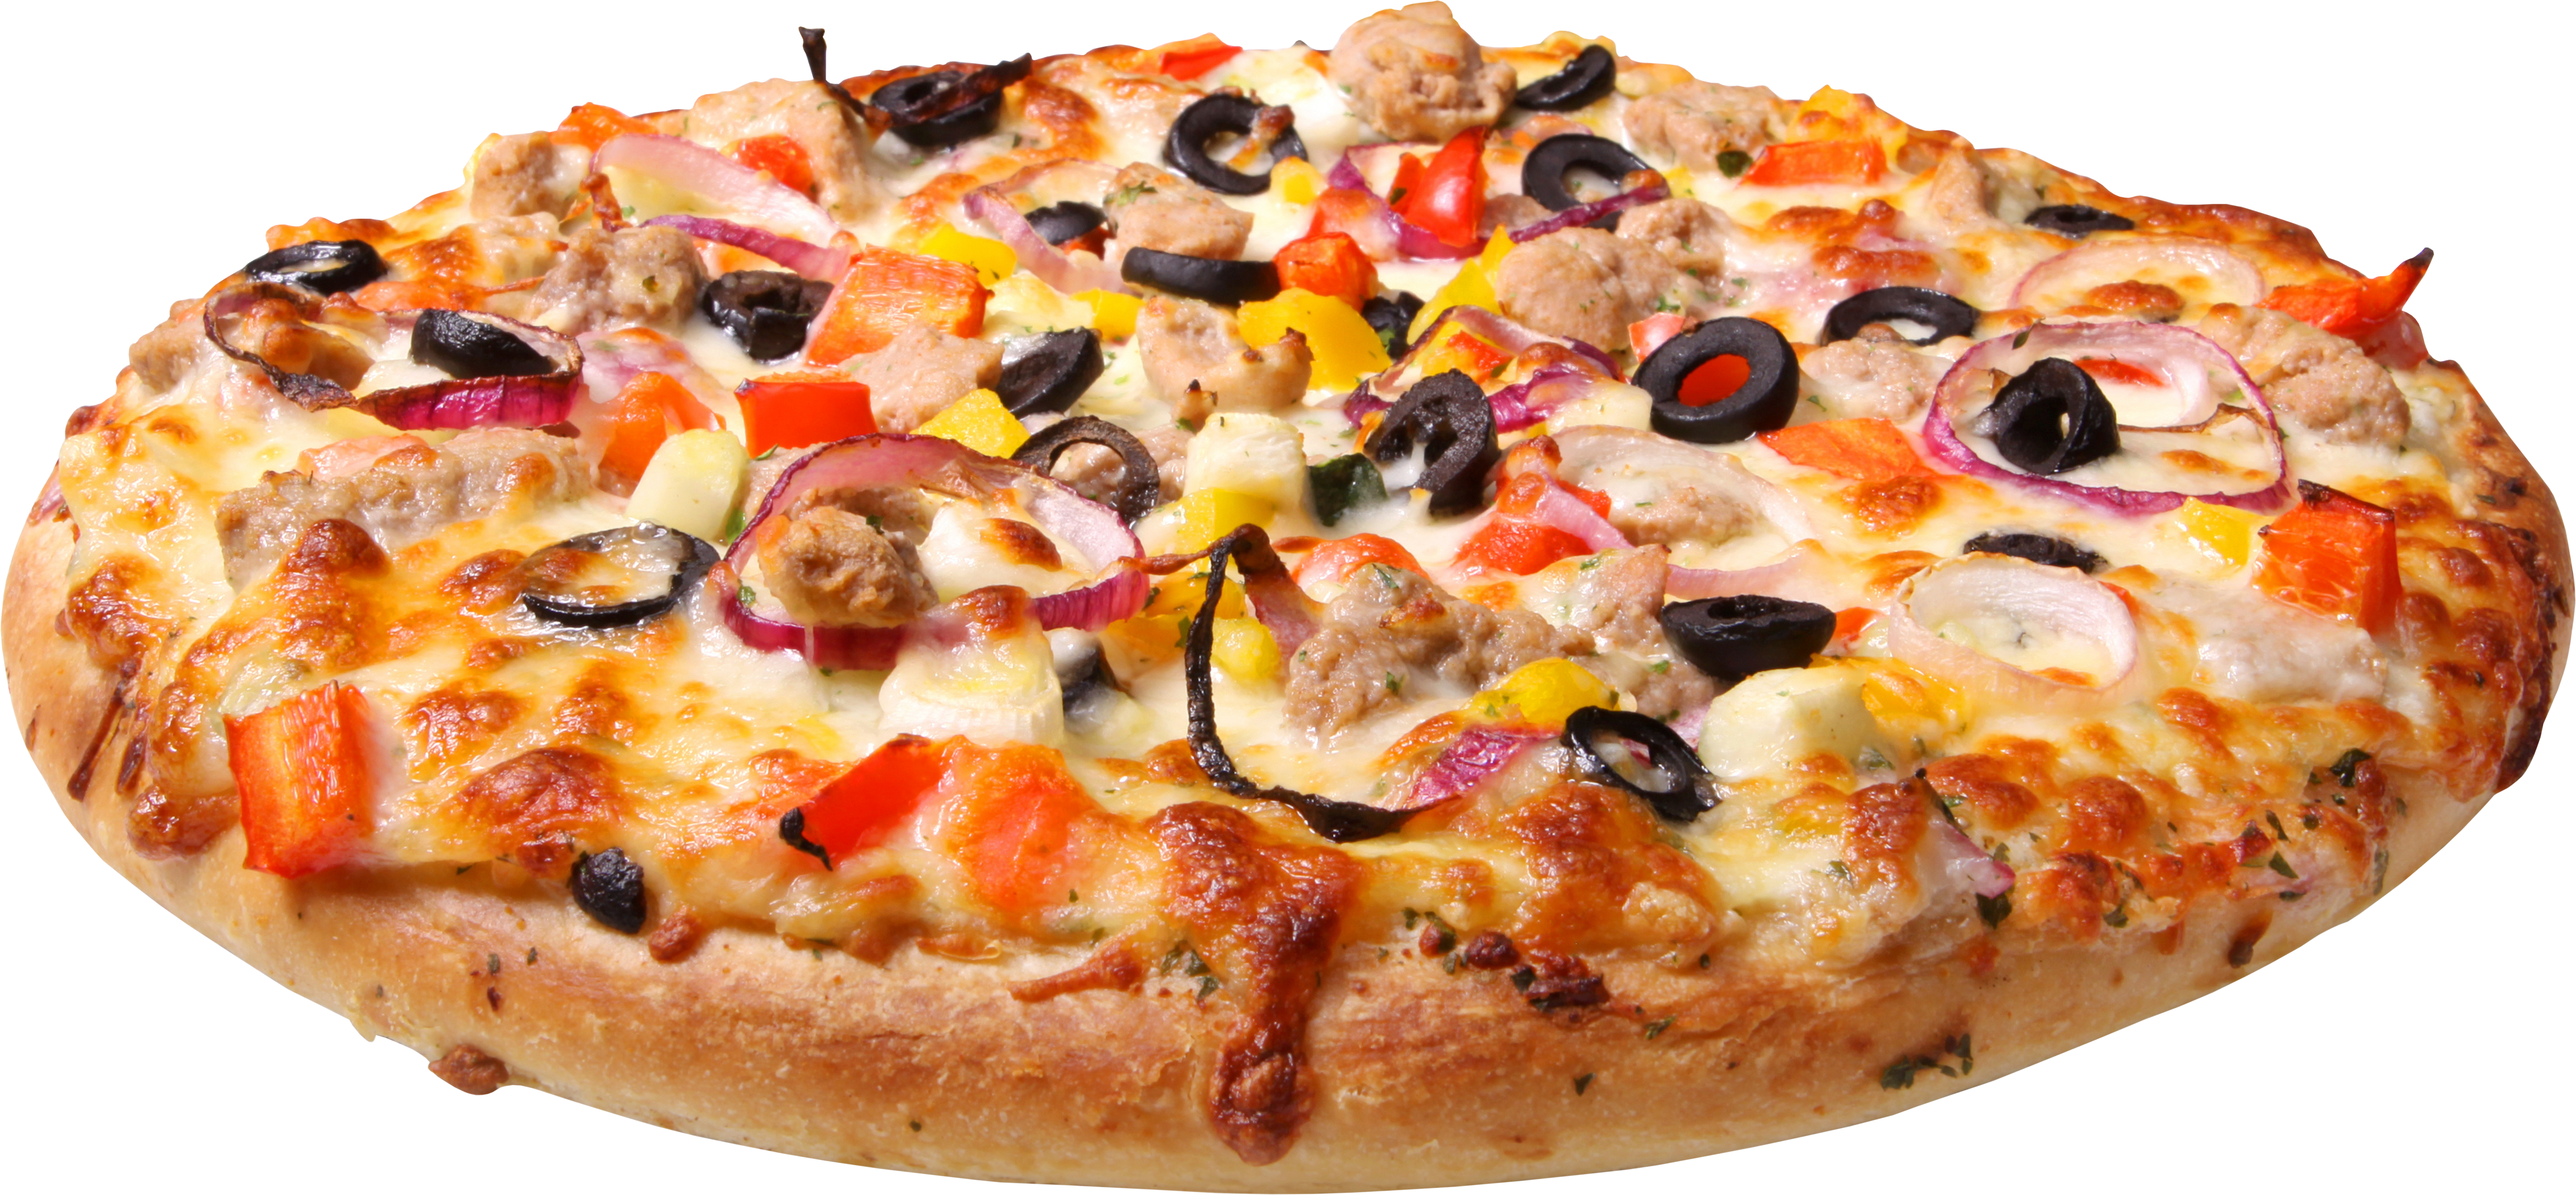 Pizza png images. Free download